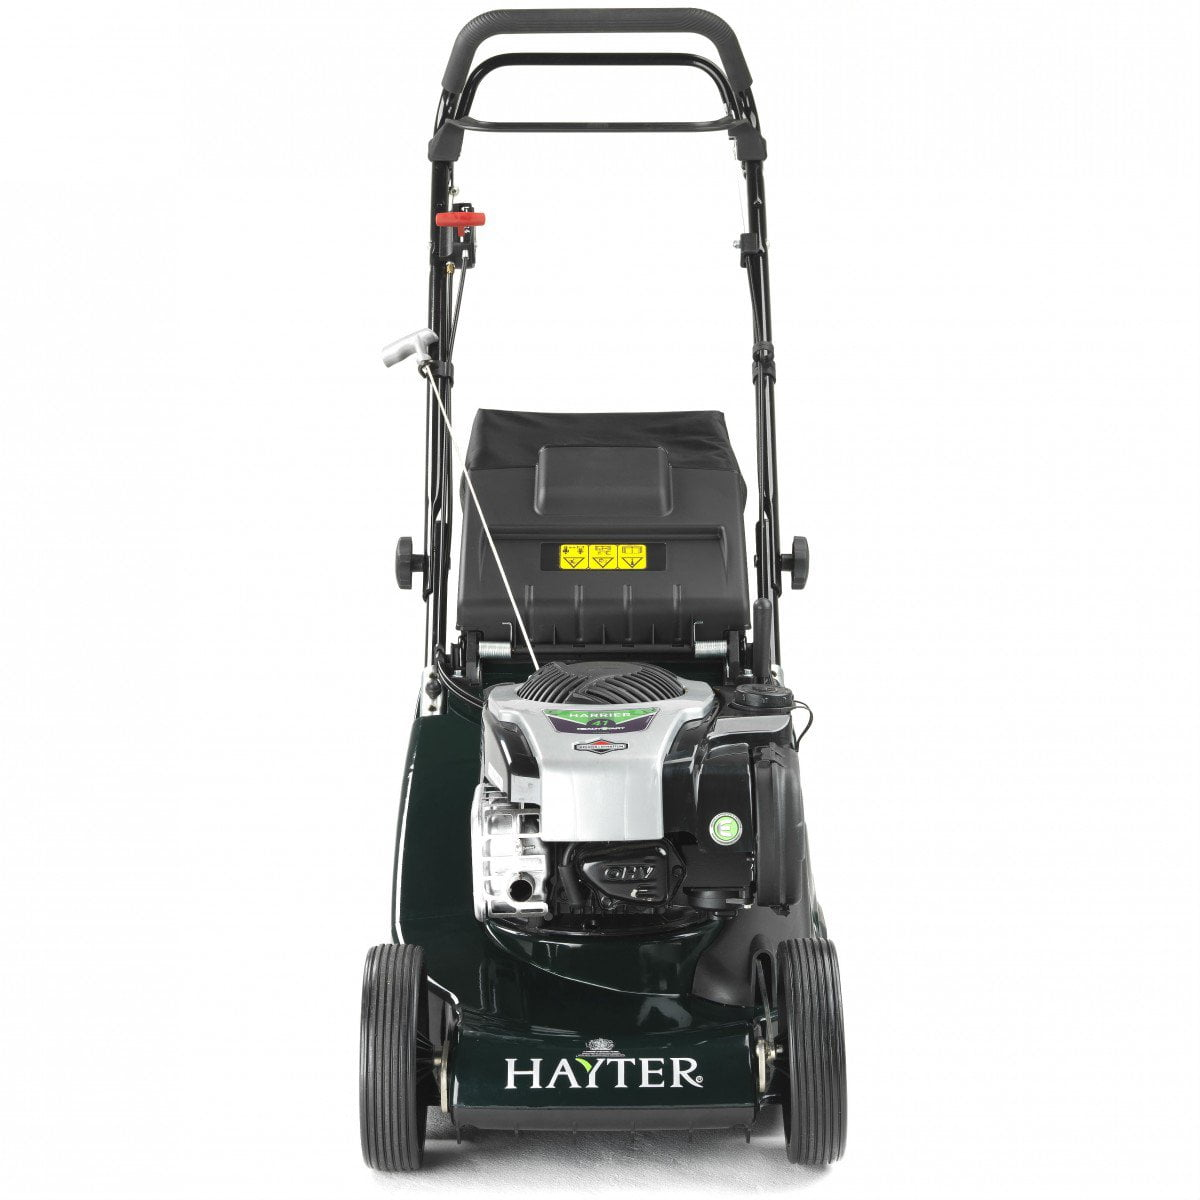 Hayter Harrier 41 (375A) Self Propelled VS Lawnmower